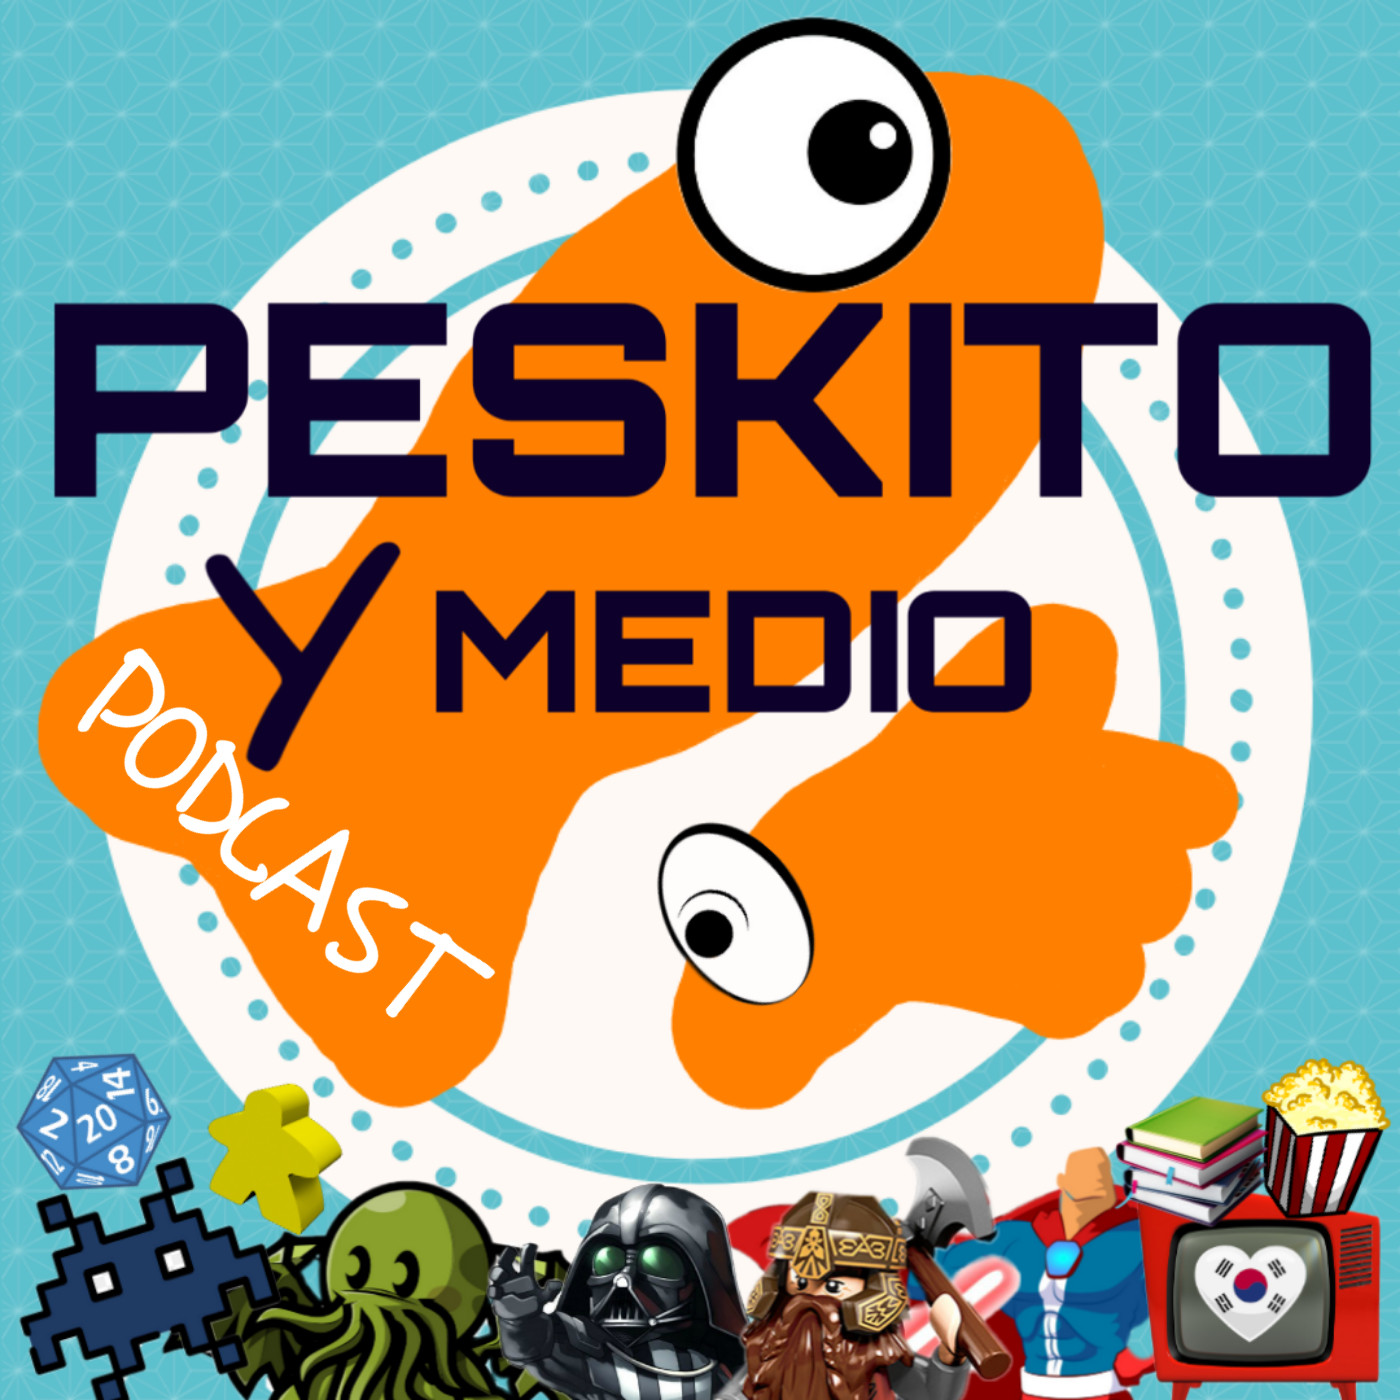 Promo Peskito Y Medio 2.0 - Old Version también ;P